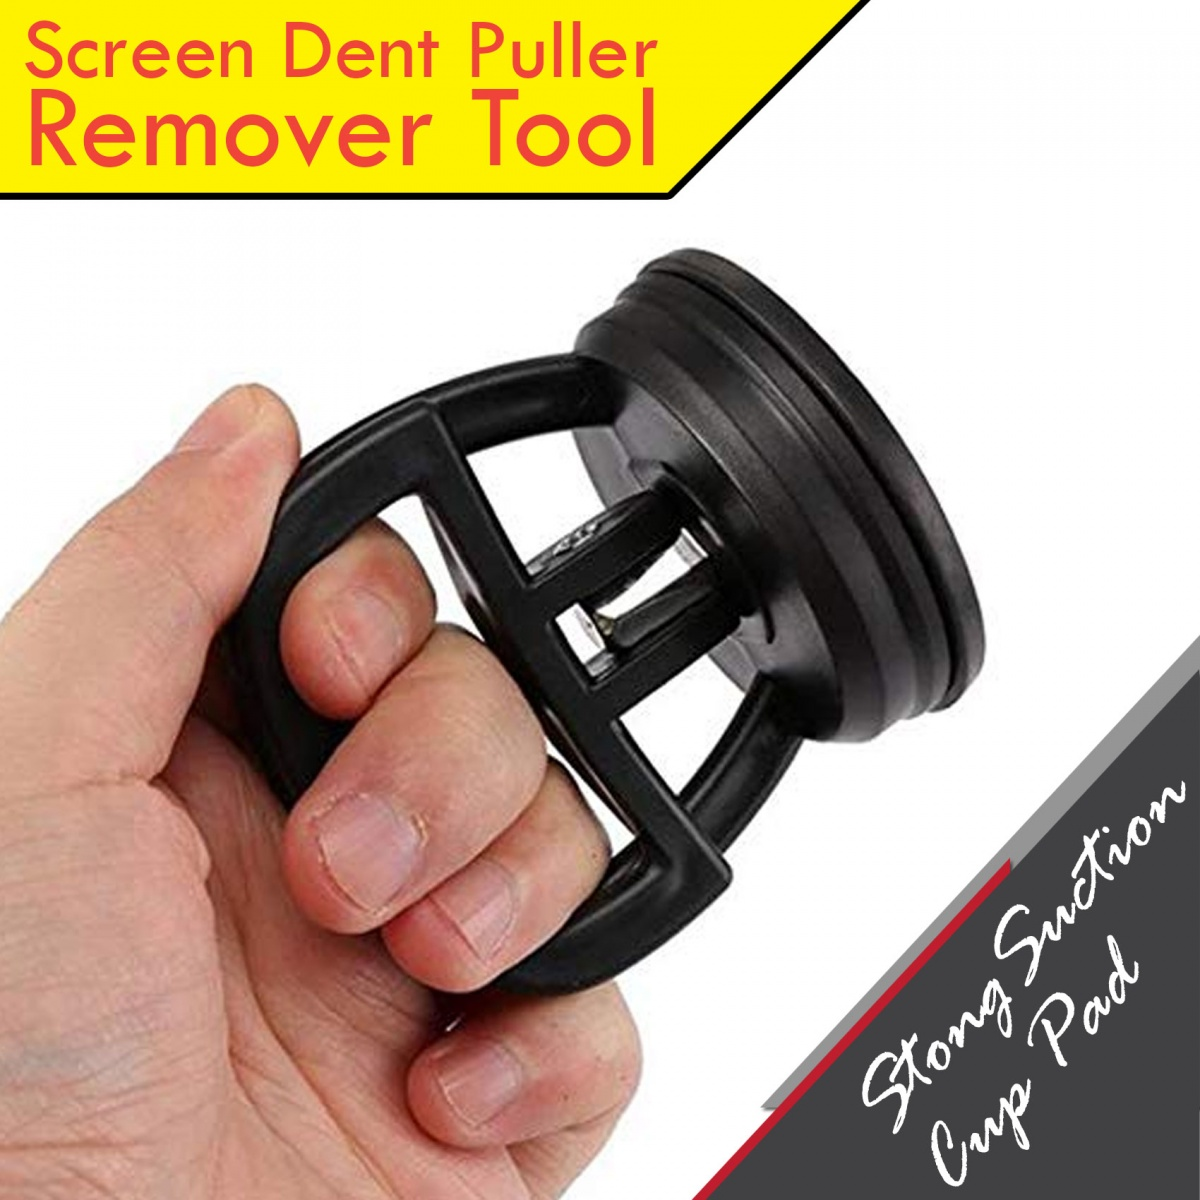 Screen Car Dent Puller Remover Tool - Black